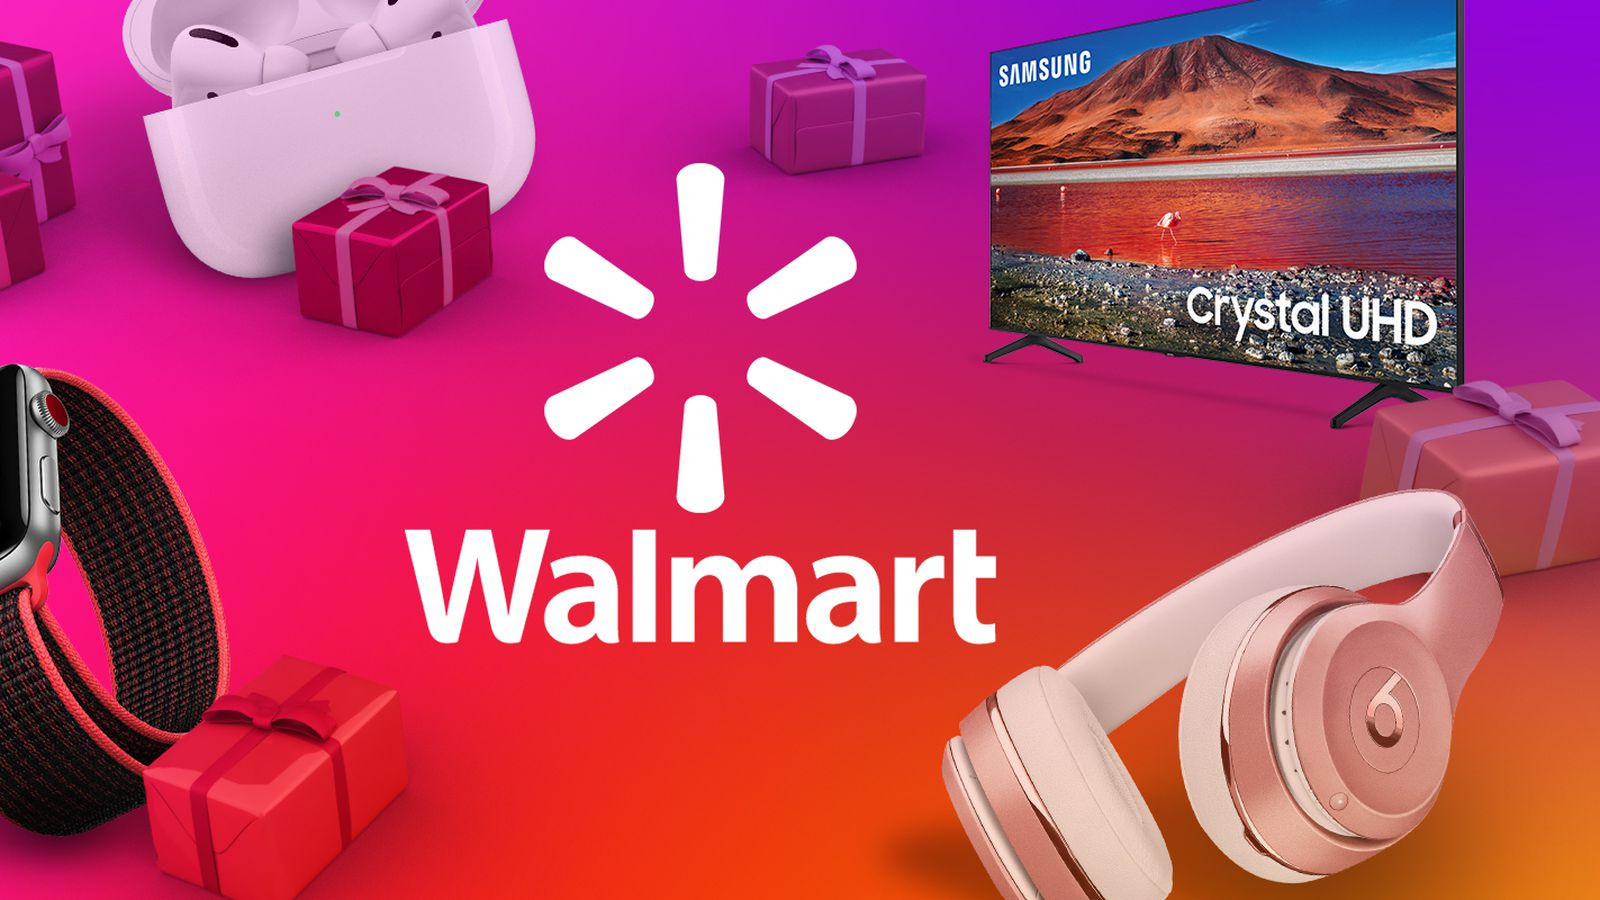 Black Friday Spotlight Walmart Will Have Airpods Pro Down To Lowest Price Of 169 And More Apple Deals Macrumors